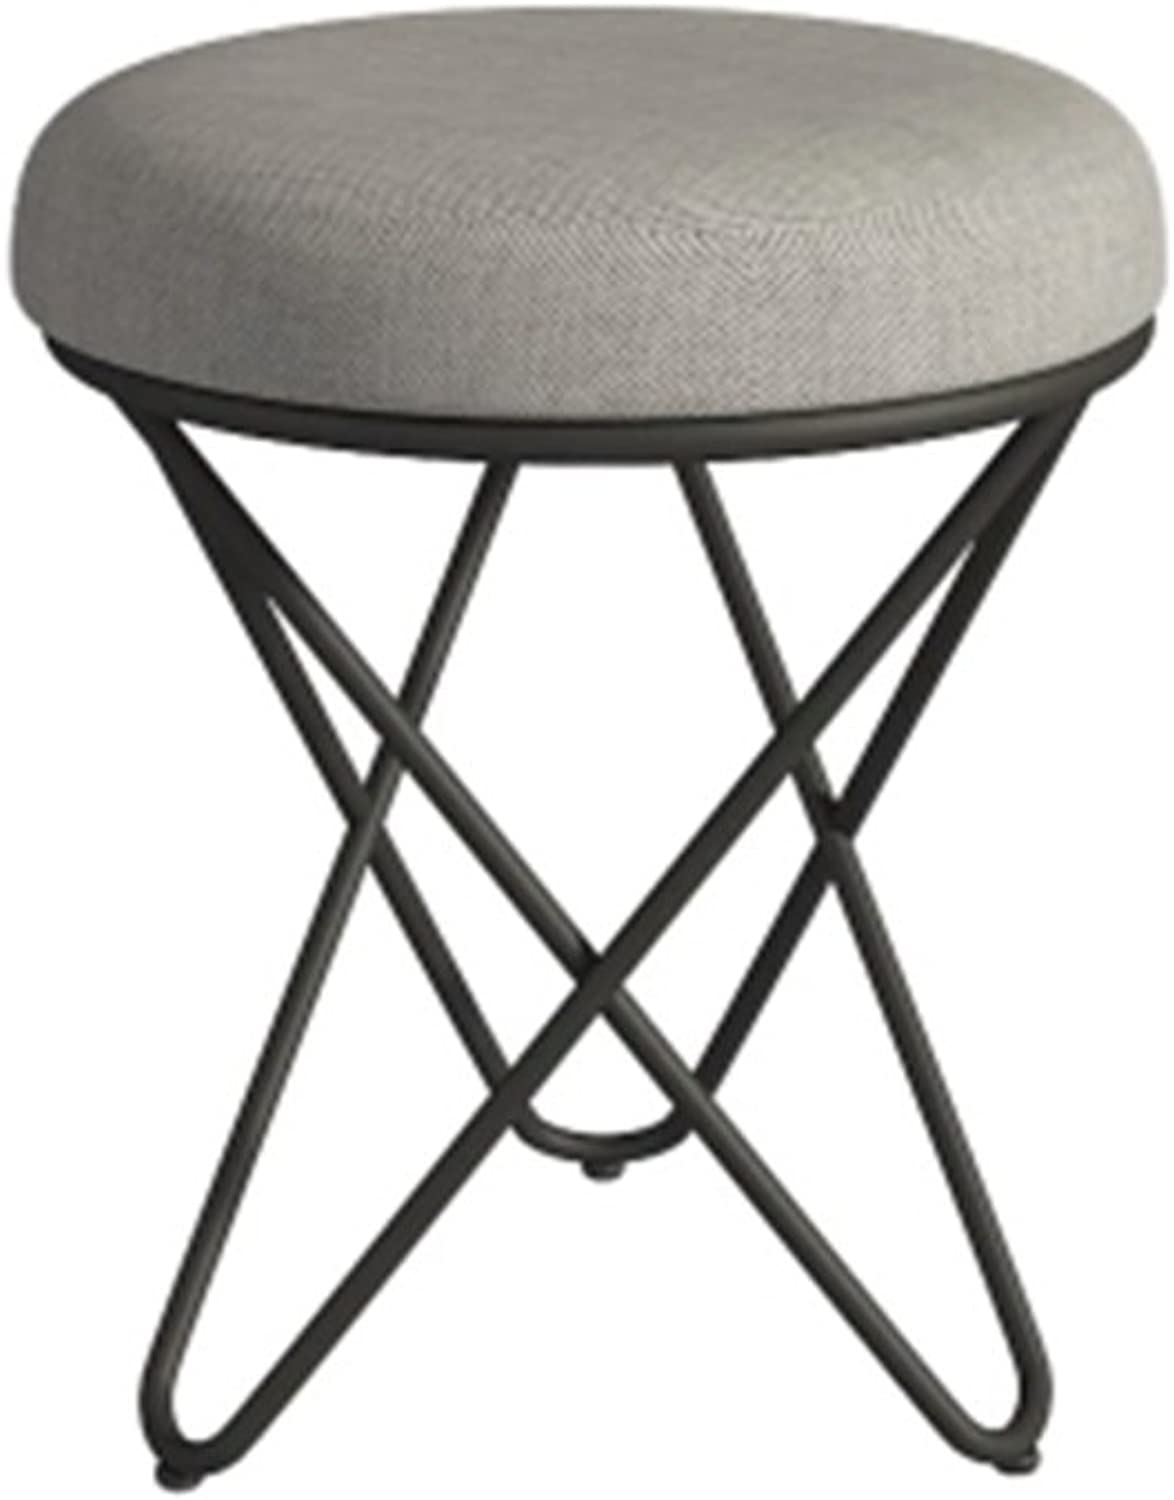 AJZGF Iron Short Stool, Fabric Change shoes Makeup Stool - Small Stool (color    2)